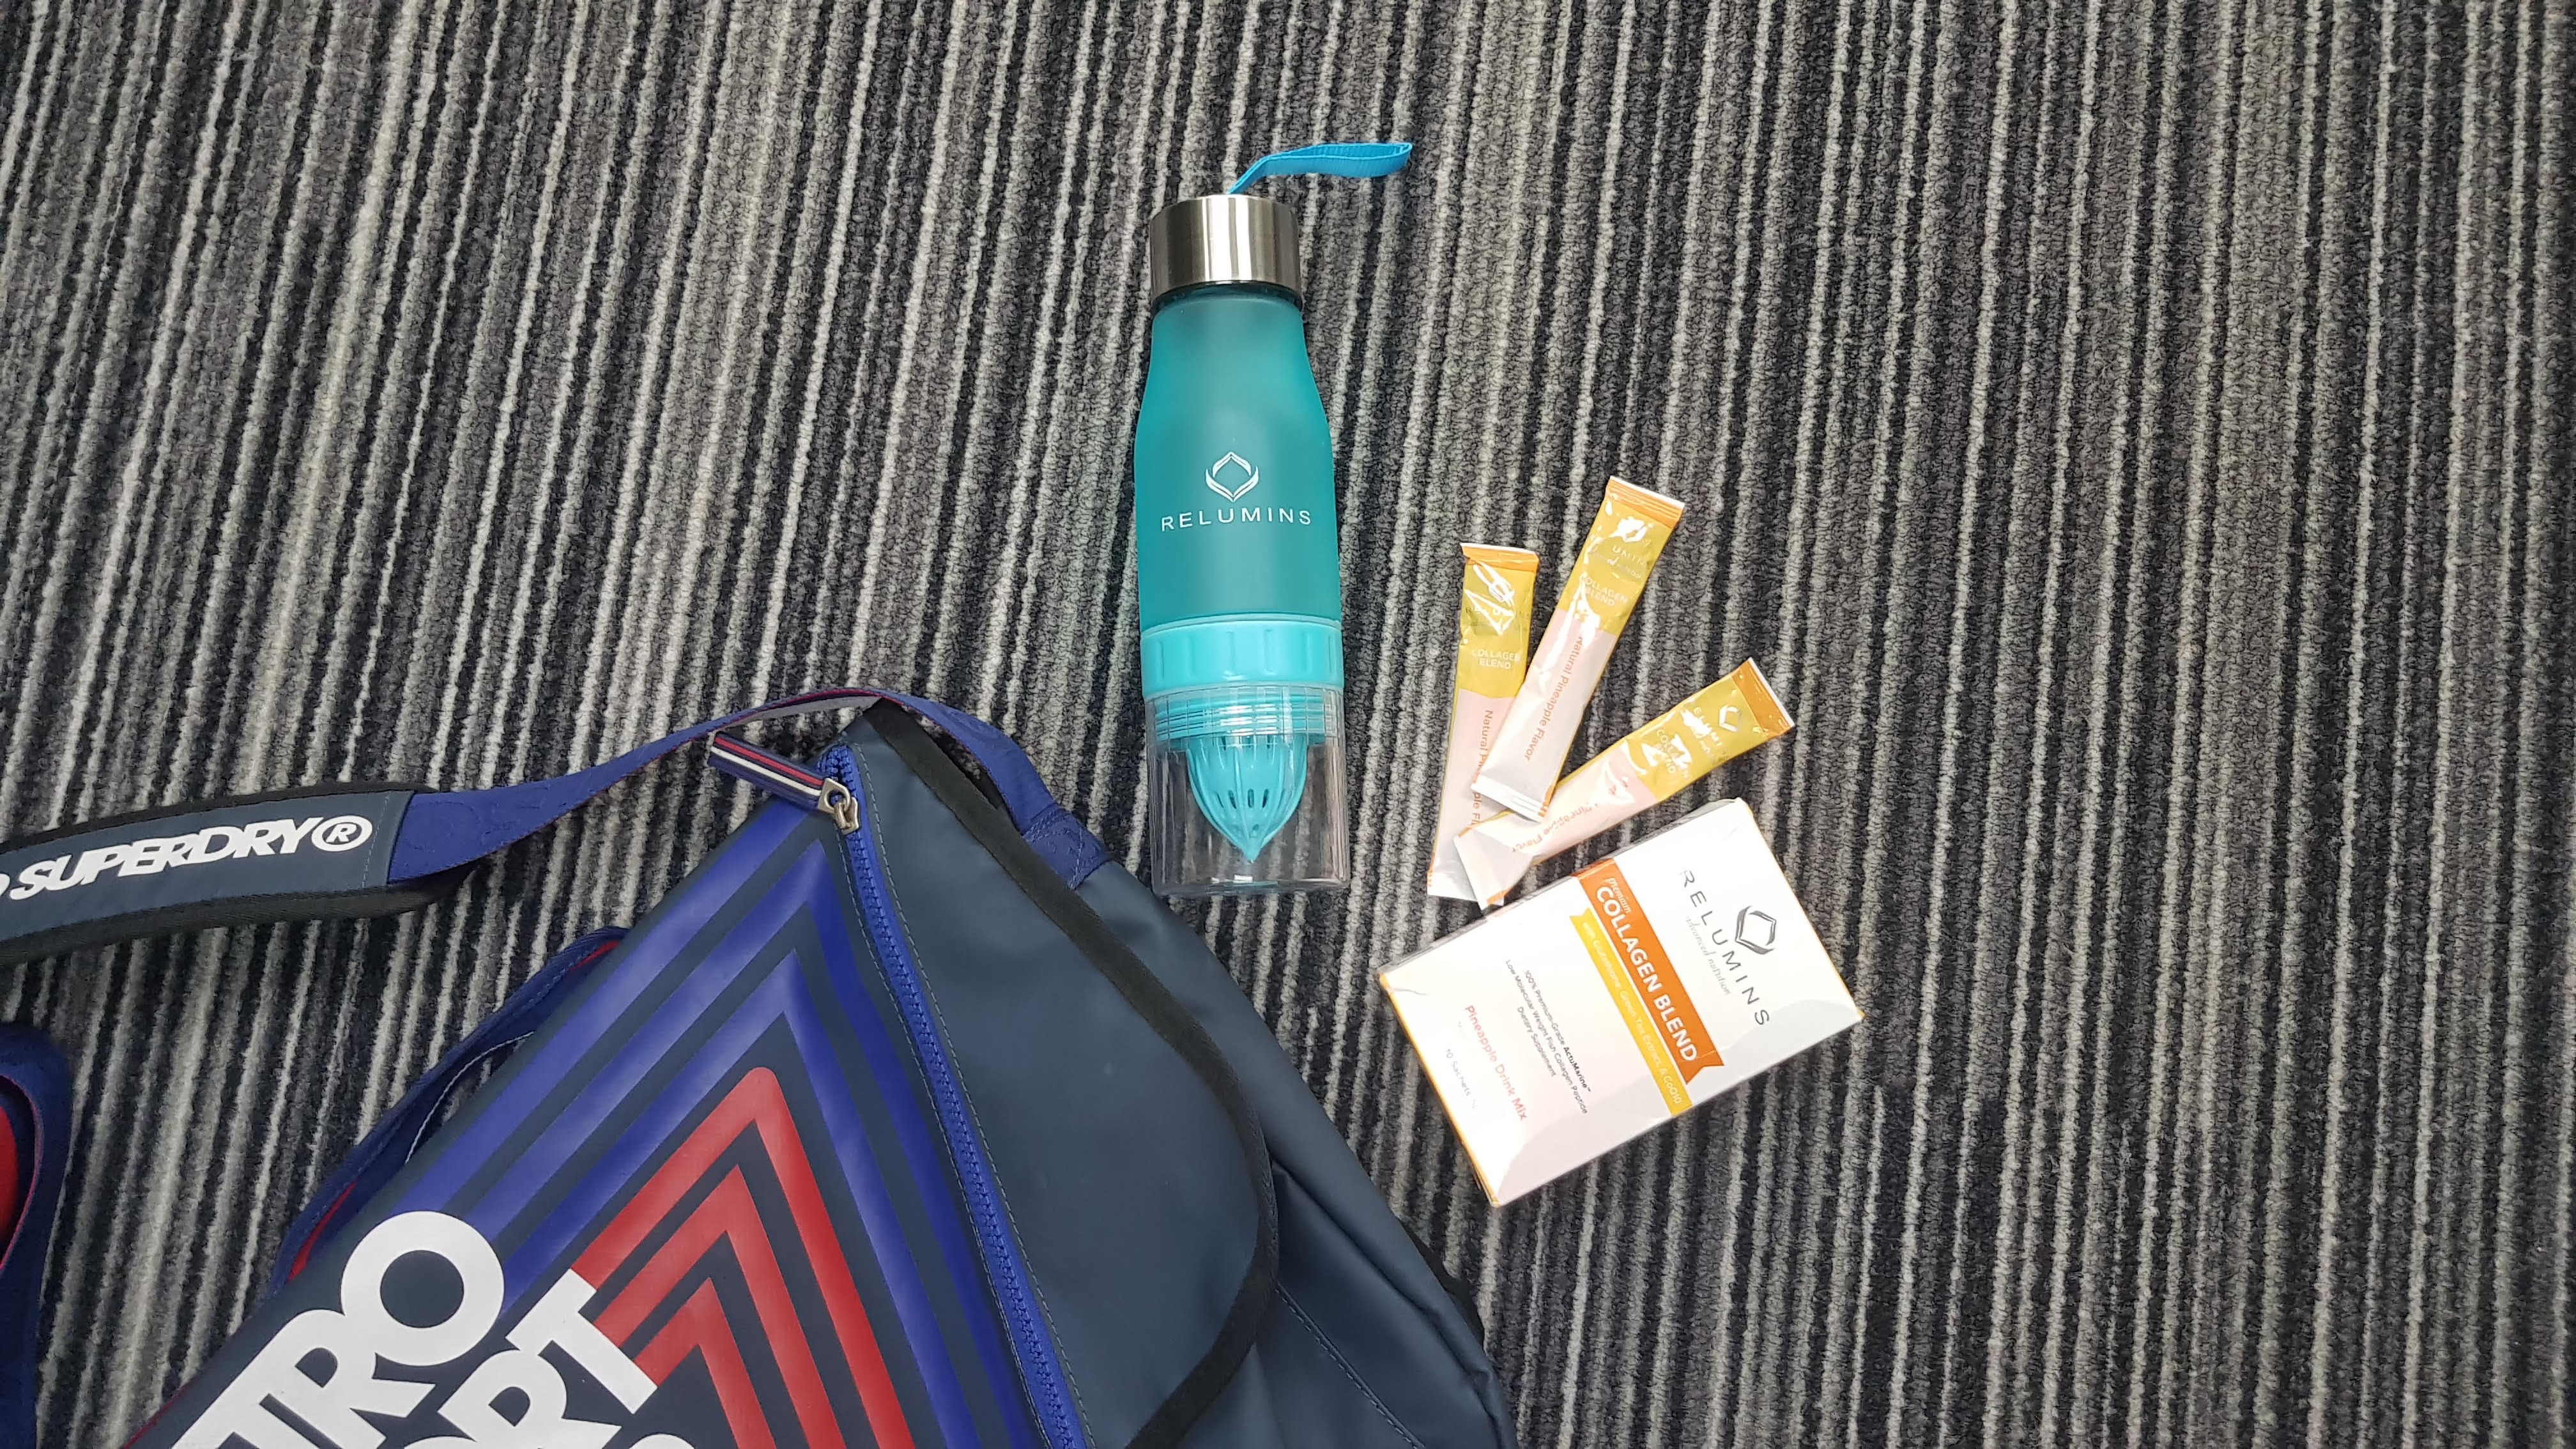 Beauty on the go with Relumins